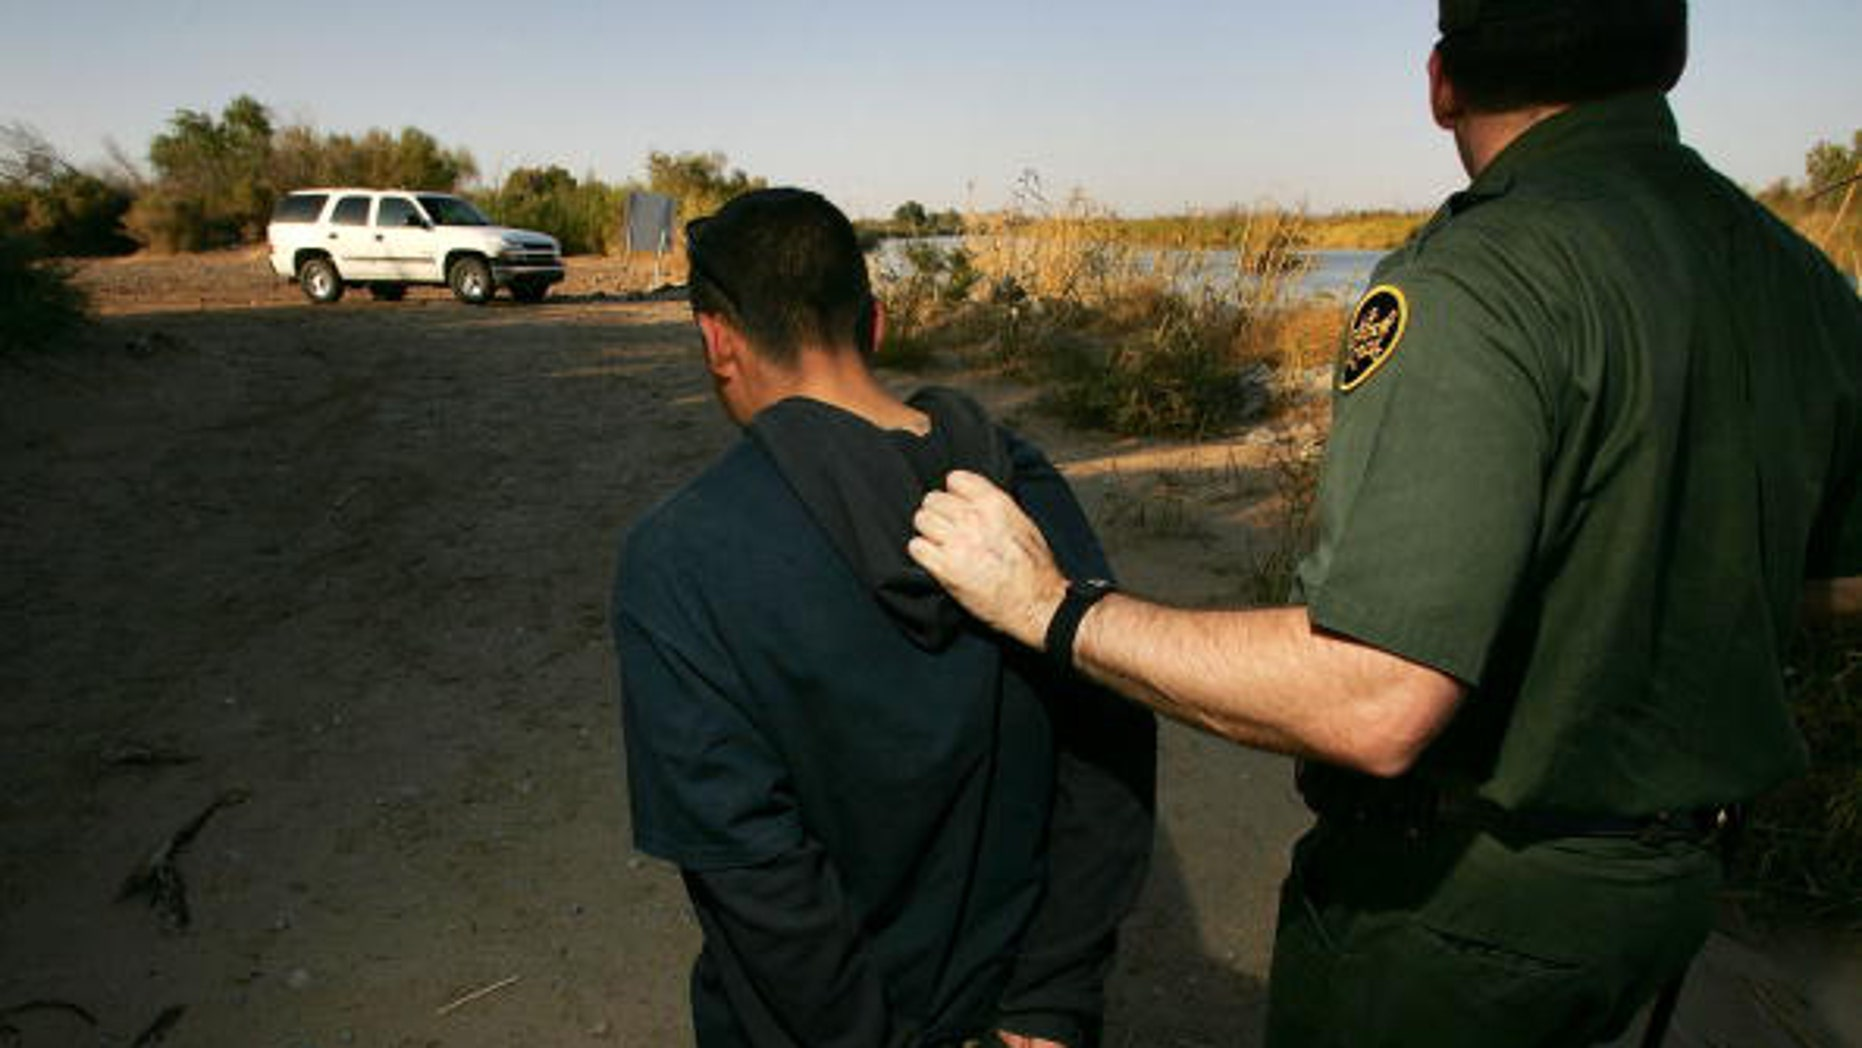 YUMA, AZ - MARCH 17:  U.S. Customs and Border Protection border patrol agent Ben Vik apprehends a suspected illegal immigrant on the California side of the Colorado River on March 17, 2006 near Yuma, Arizona. As Congress begins a new battle over immigration policy, U.S. Customs and Border Protection (CBP) border patrol agents in Arizona are struggling to control undocumented immigrants that were pushed into the region by the 1990?s border crack-down in California called Operation Gatekeeper. A recent study by the Pew Hispanic Center using Census Bureau data estimates that the United States currently has an illegal immigrant population of 11.5 million to 12 million, about one-third of them arriving within the past 10 years. More than half are from Mexico. Ironically, beefed-up border patrols and increased security are reportedly having the unintended result of deterring many from returning to their country of origin.  (Photo by David McNew/Getty Images)